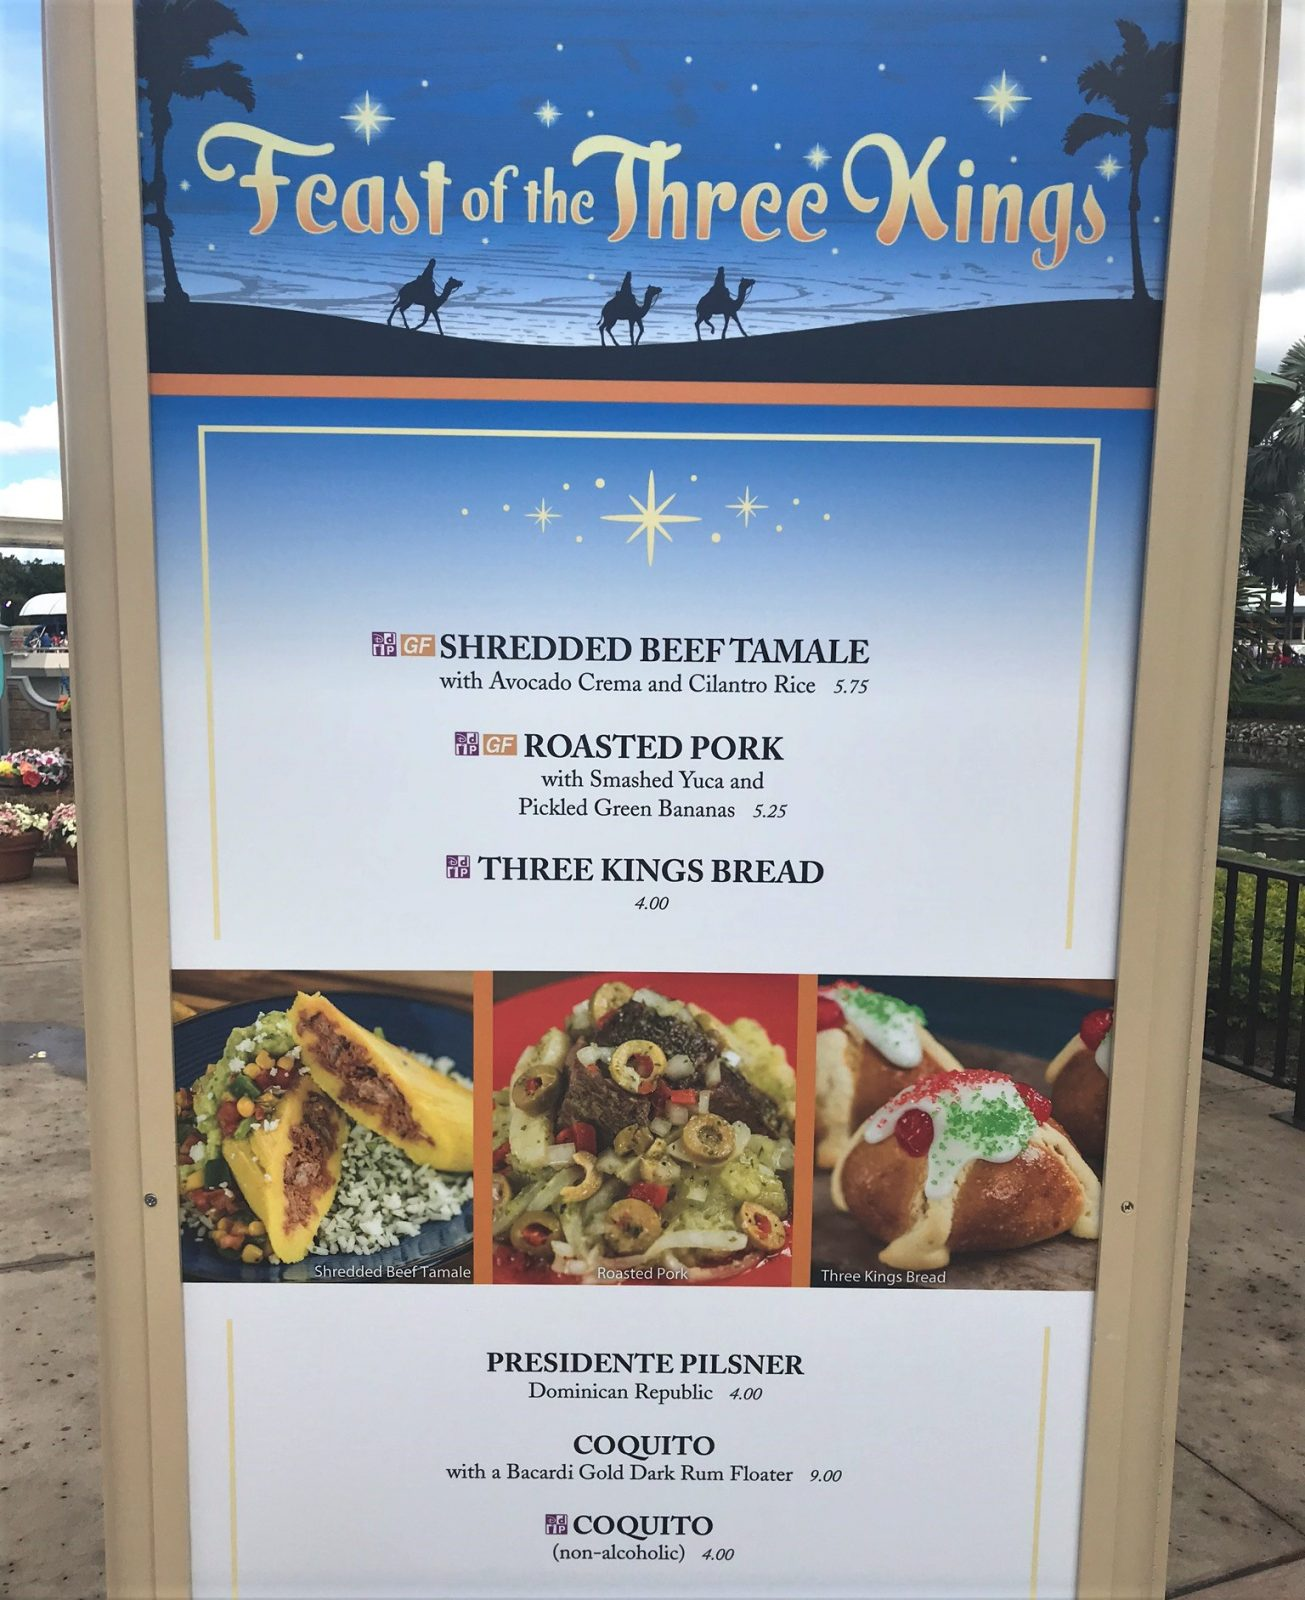 feast of the three kings sign with menu items